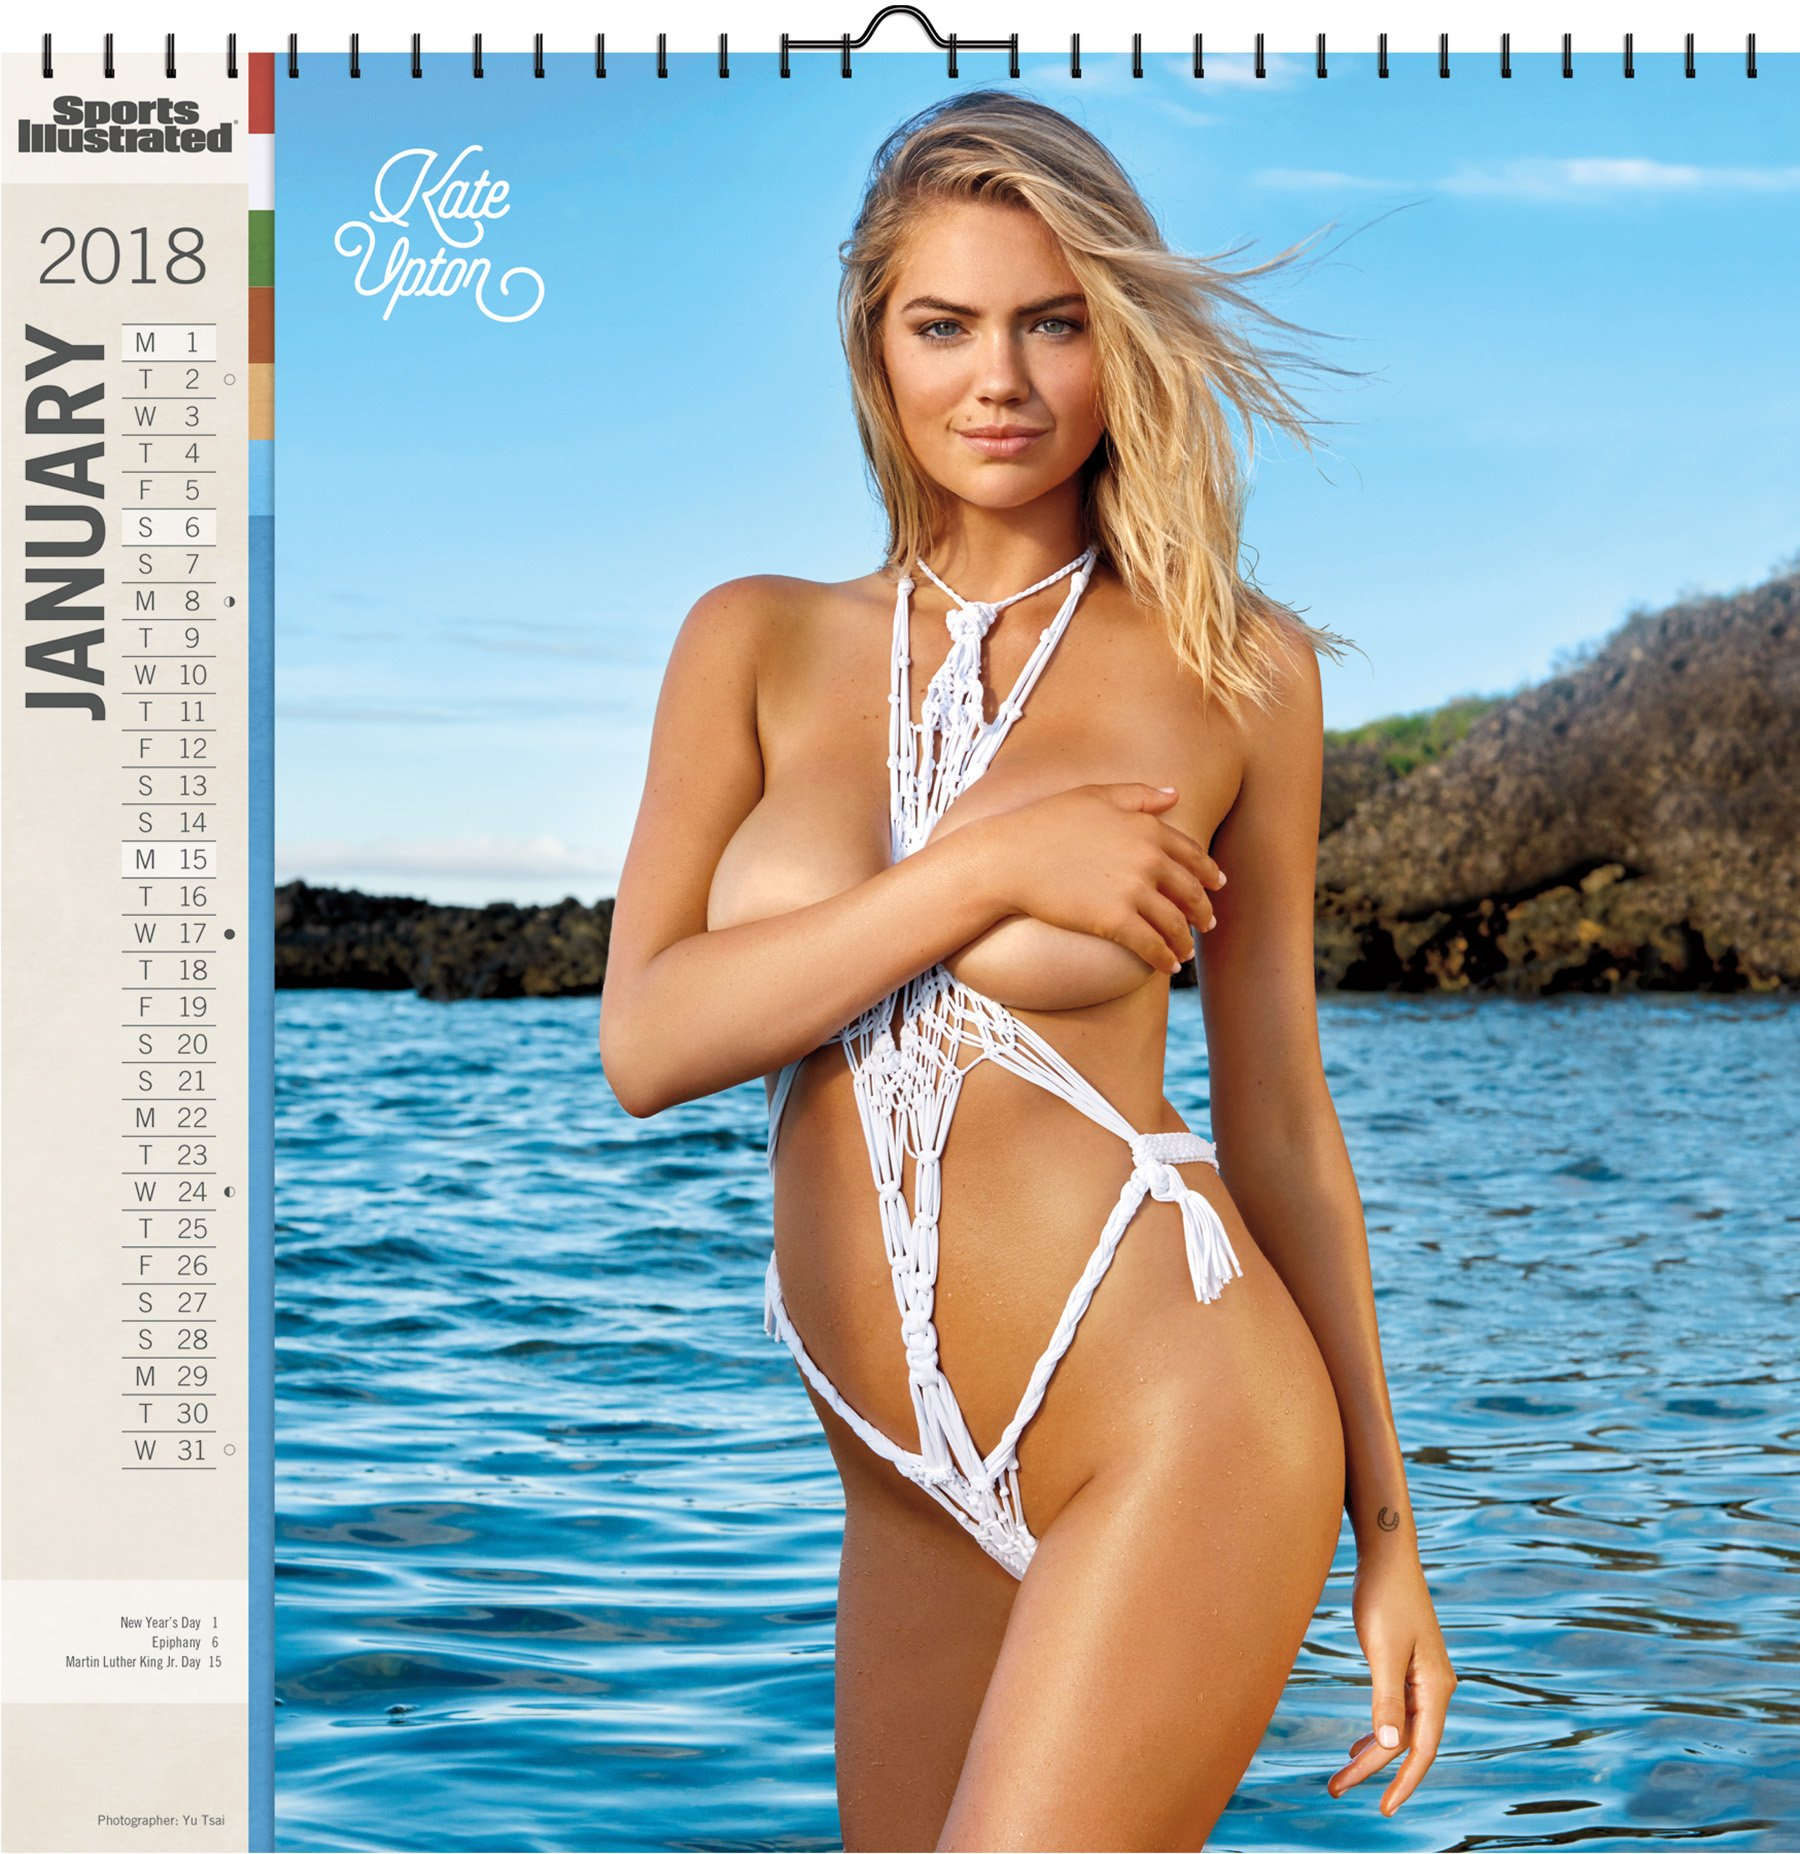 17a47f027d Sports Illustrated Swimsuit 2018 Deluxe Wall Calendar  Trends  International  0600292687837  Amazon.com  Books